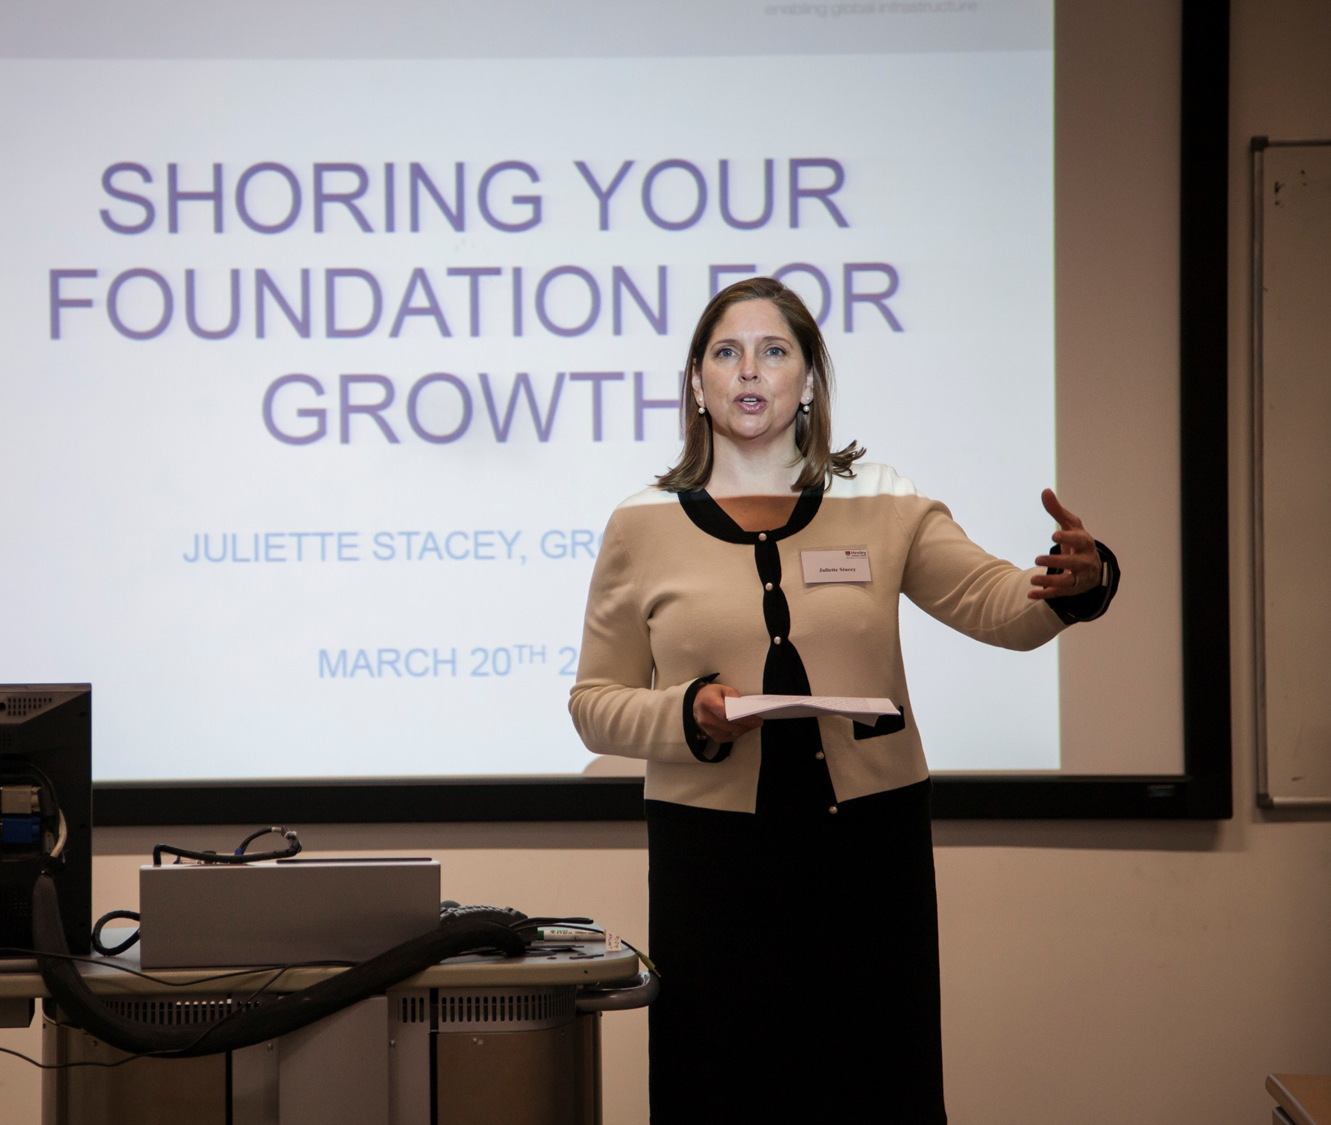 First class talk by Juliette Stacey, Group CEO of Mabey Holdings